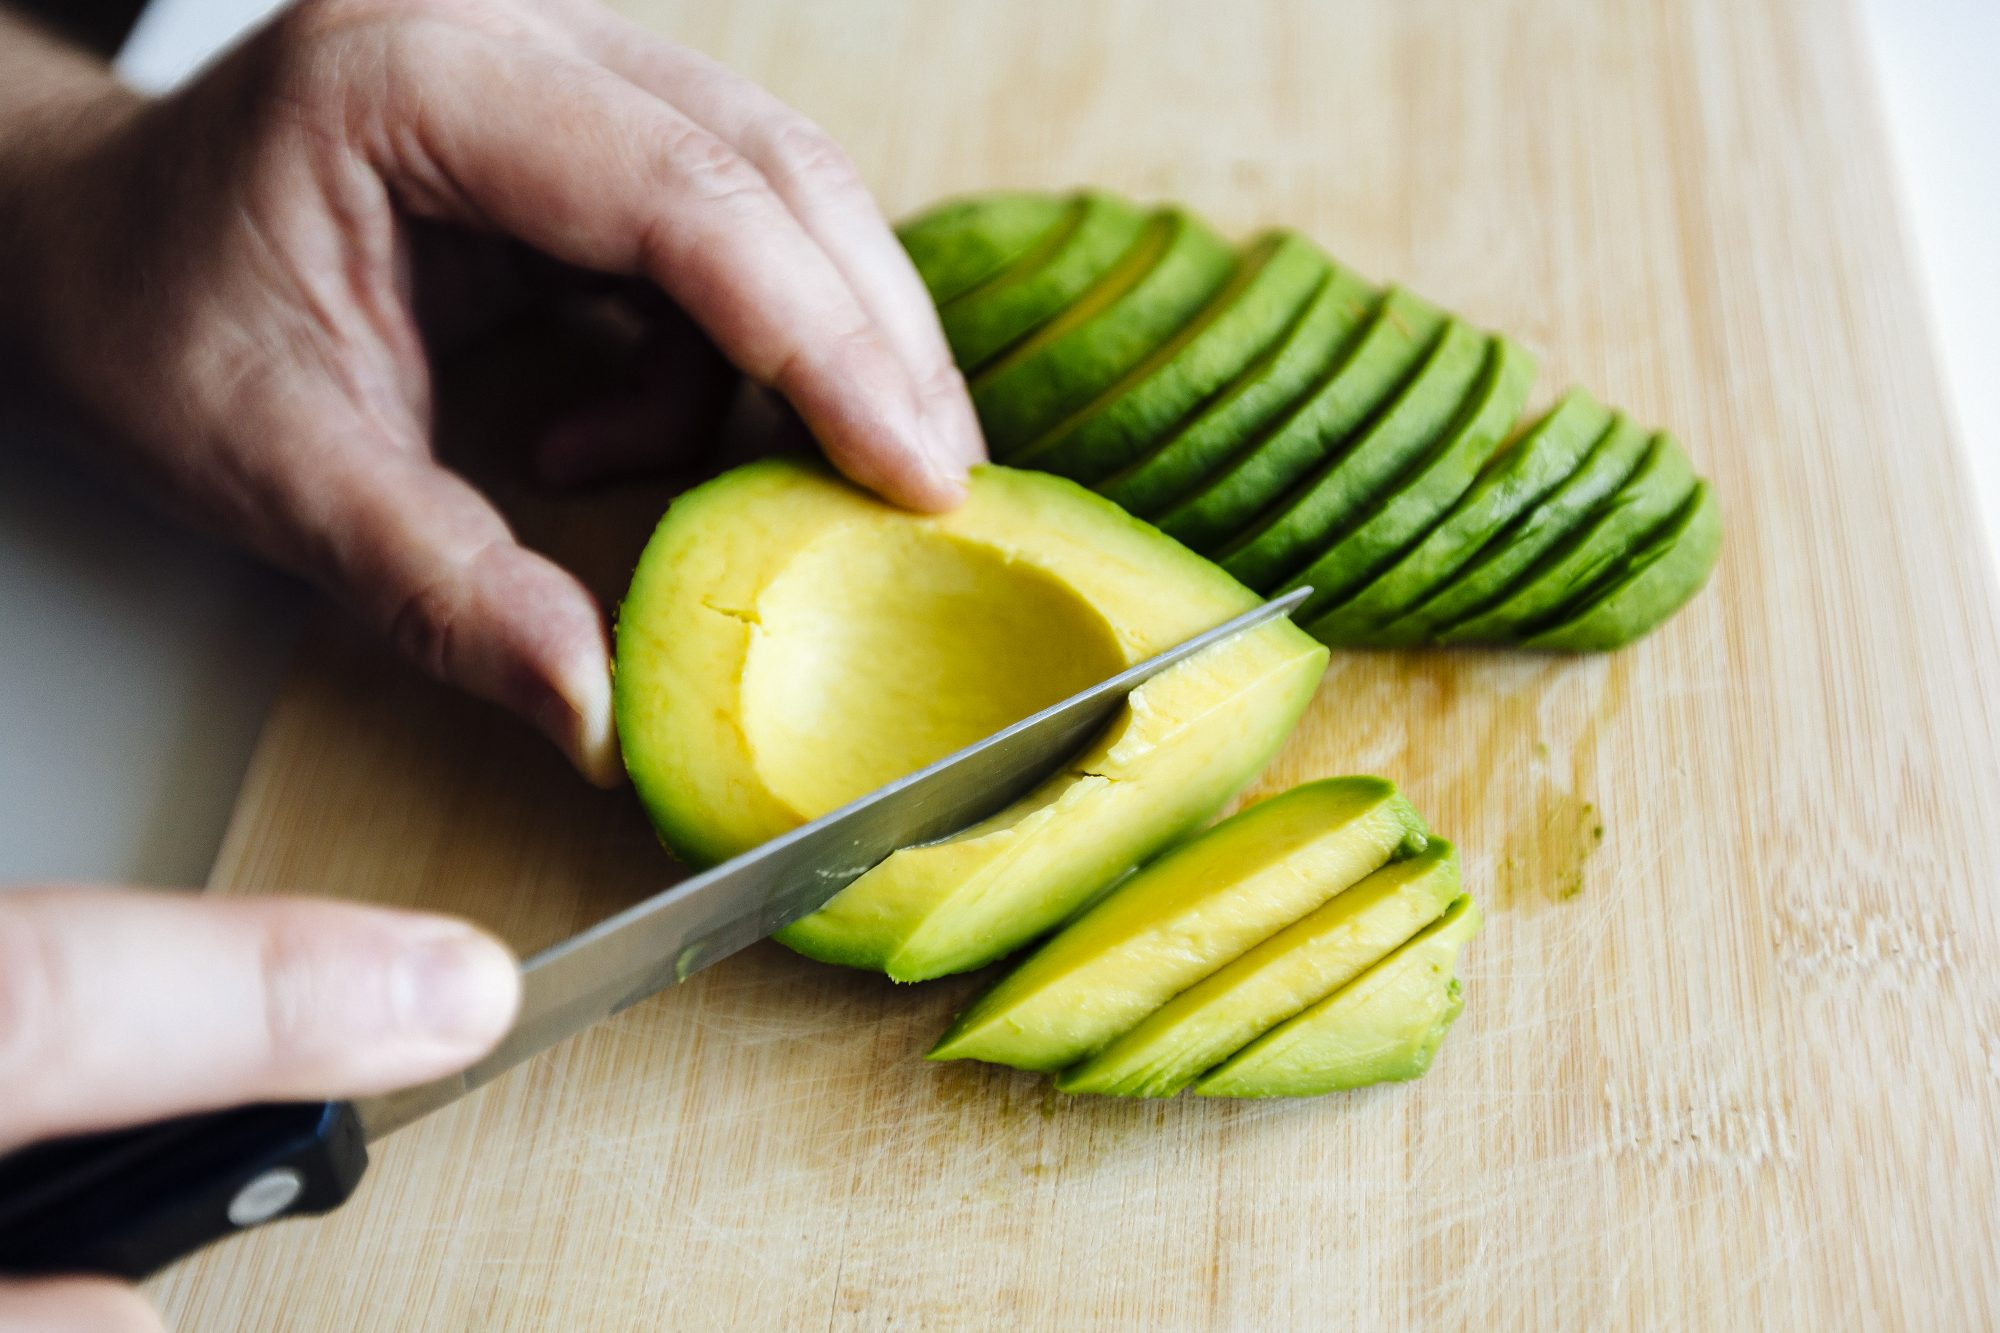 Man slicing avocado with a knife on a cutting board close up